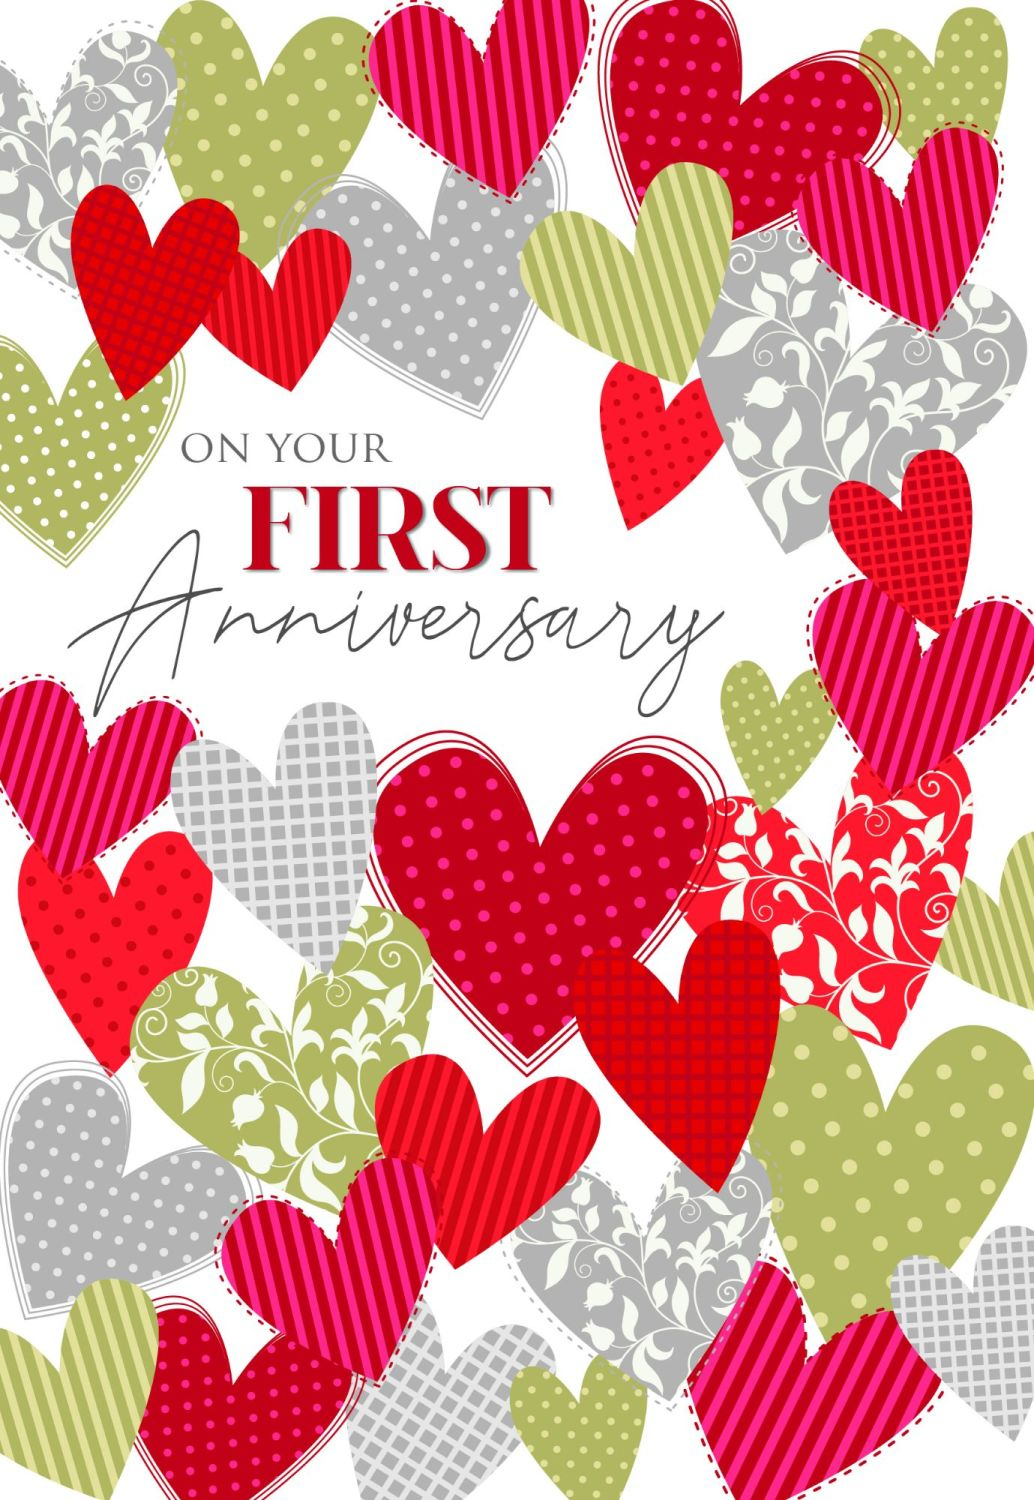 1st Anniversary Cards - COUPLE Anniversary CARDS - On YOUR First ANNIVERSAR